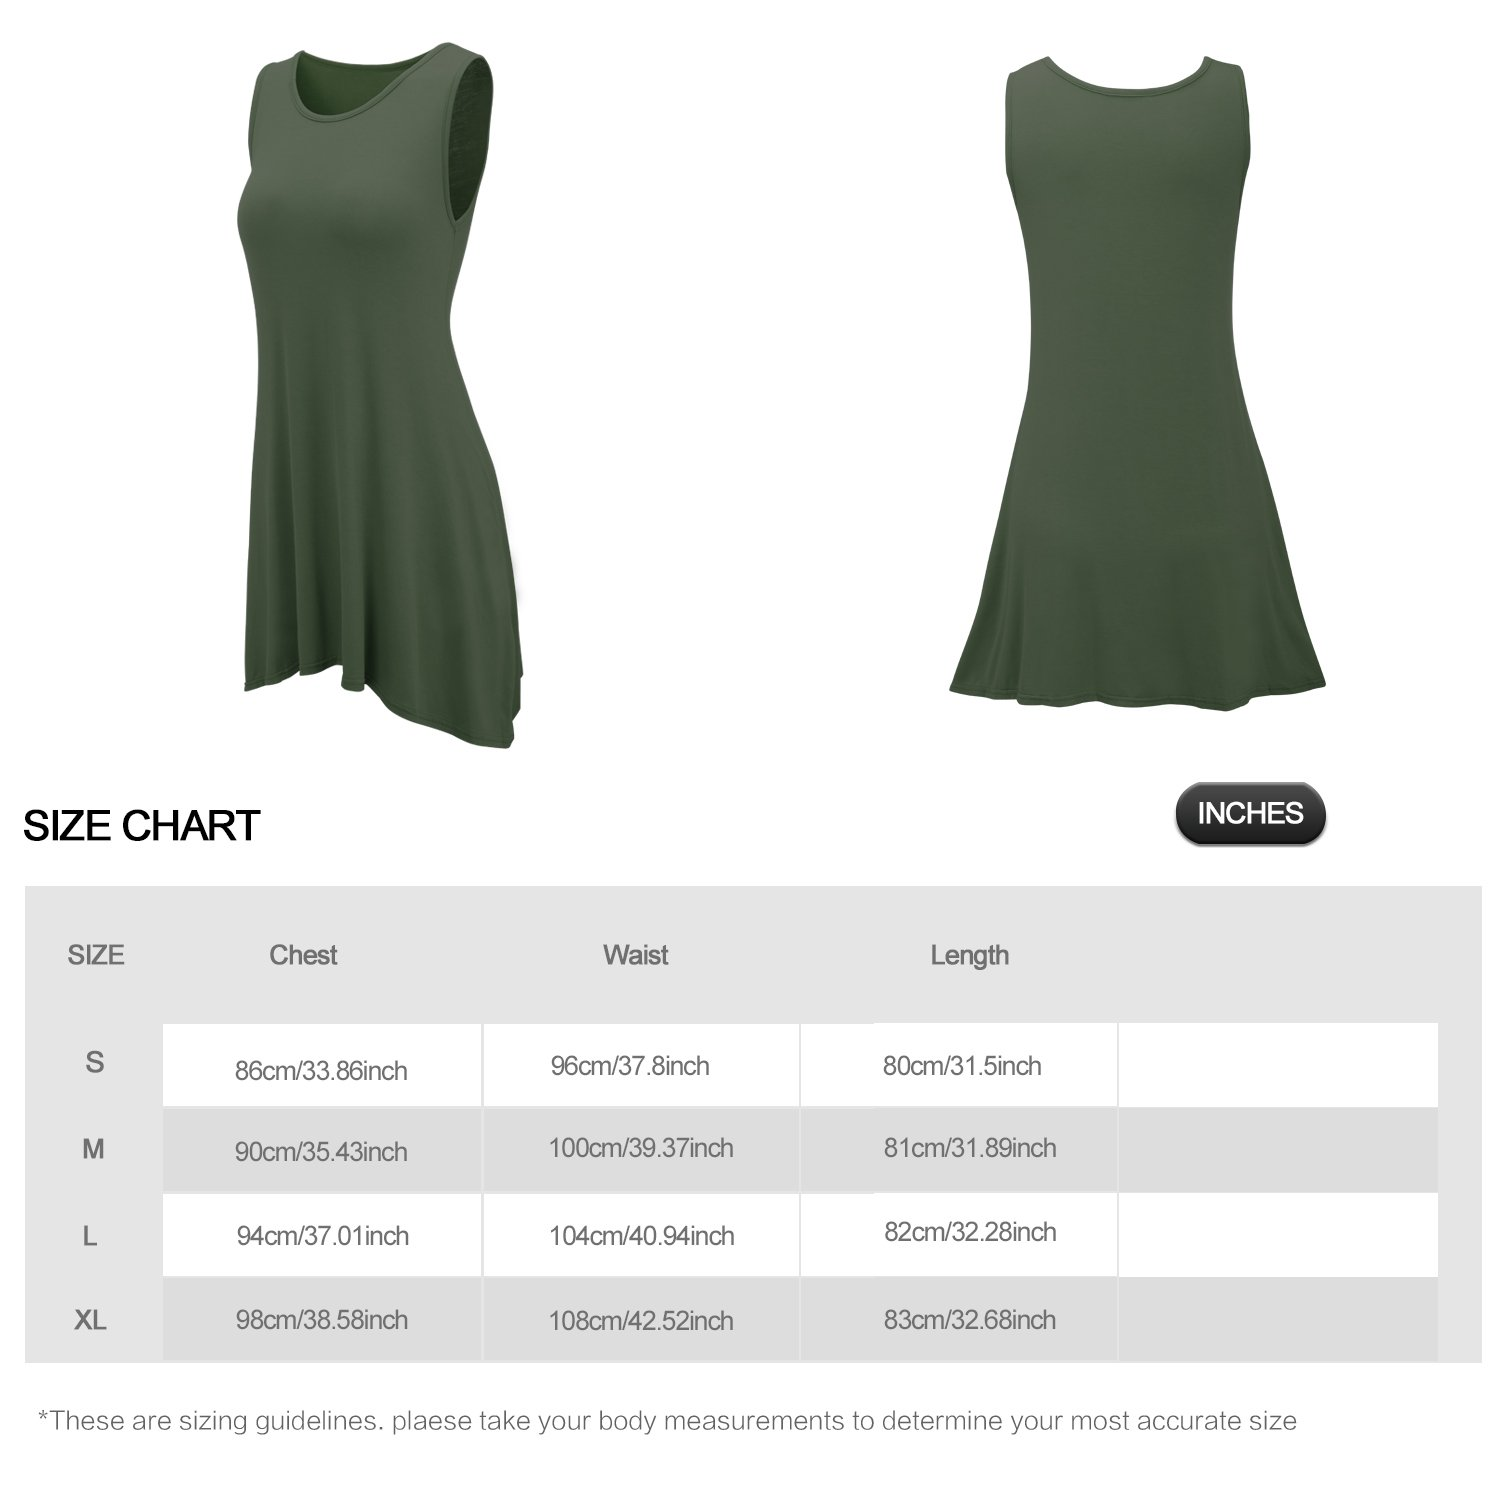 FISOUL Women Tops O-Neck Sleeveless Dress With Double Pockets Loose Bottoming Shirt Green M by FISOUL (Image #4)